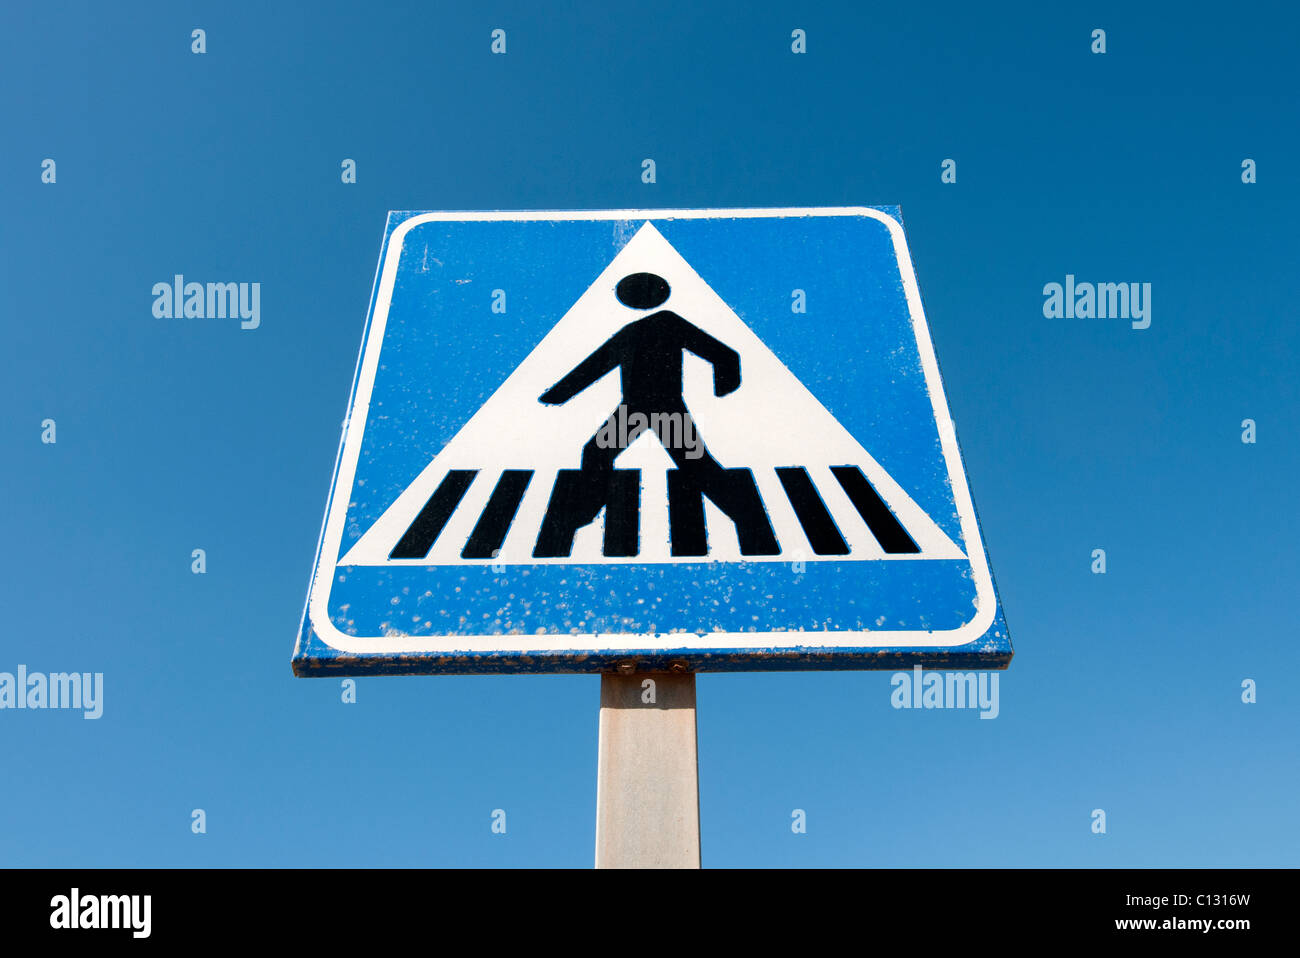 zebra crossing road sign Stock Photo